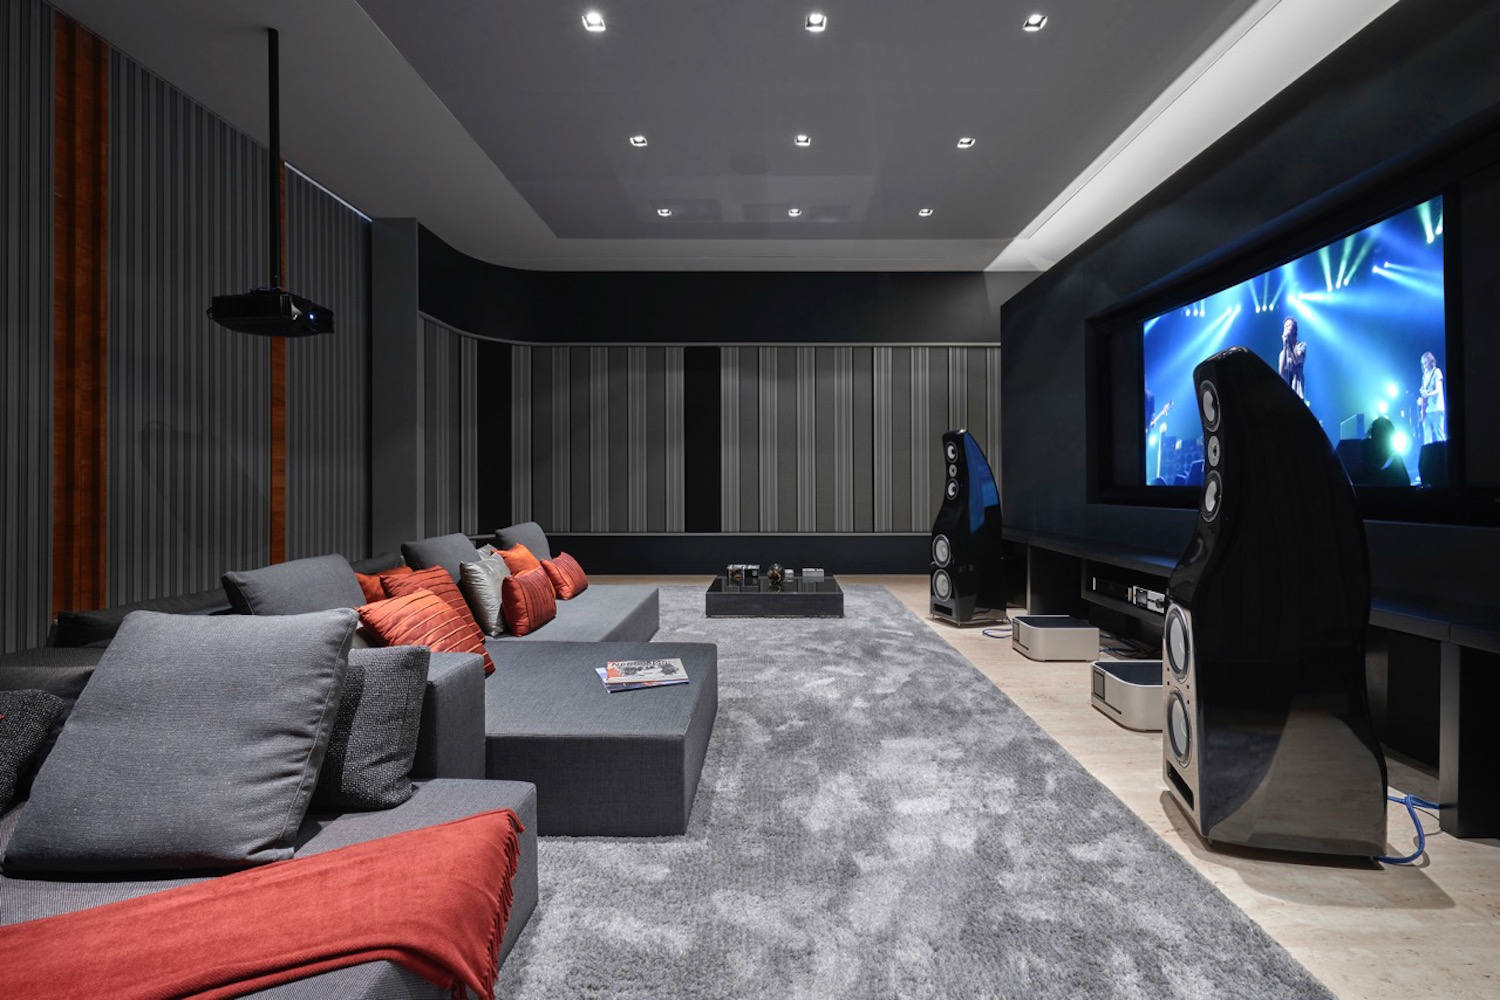 the ultimate home theater wsdg. Black Bedroom Furniture Sets. Home Design Ideas